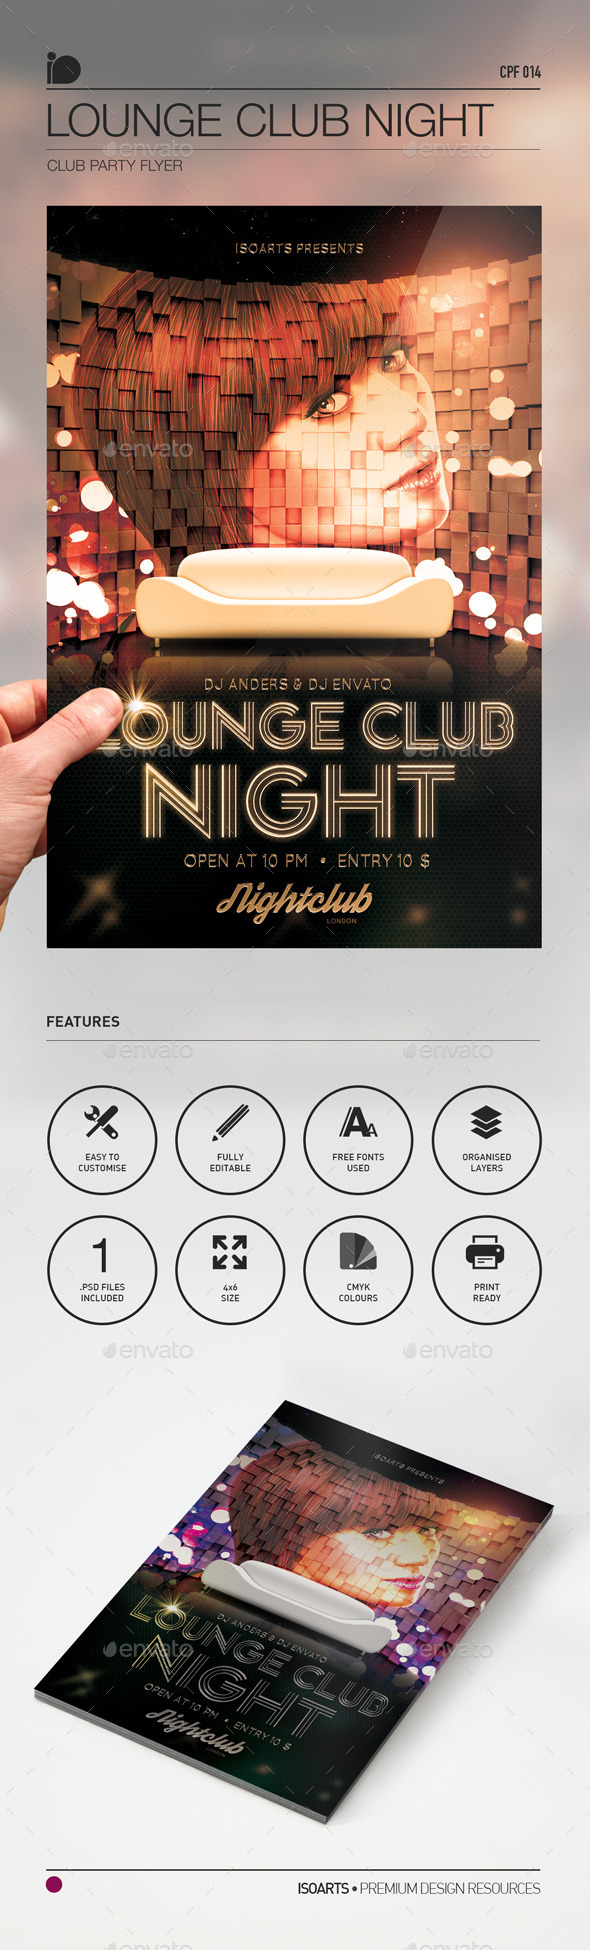 Club Party Flyer • Lounge Club Night - Clubs & Parties Events